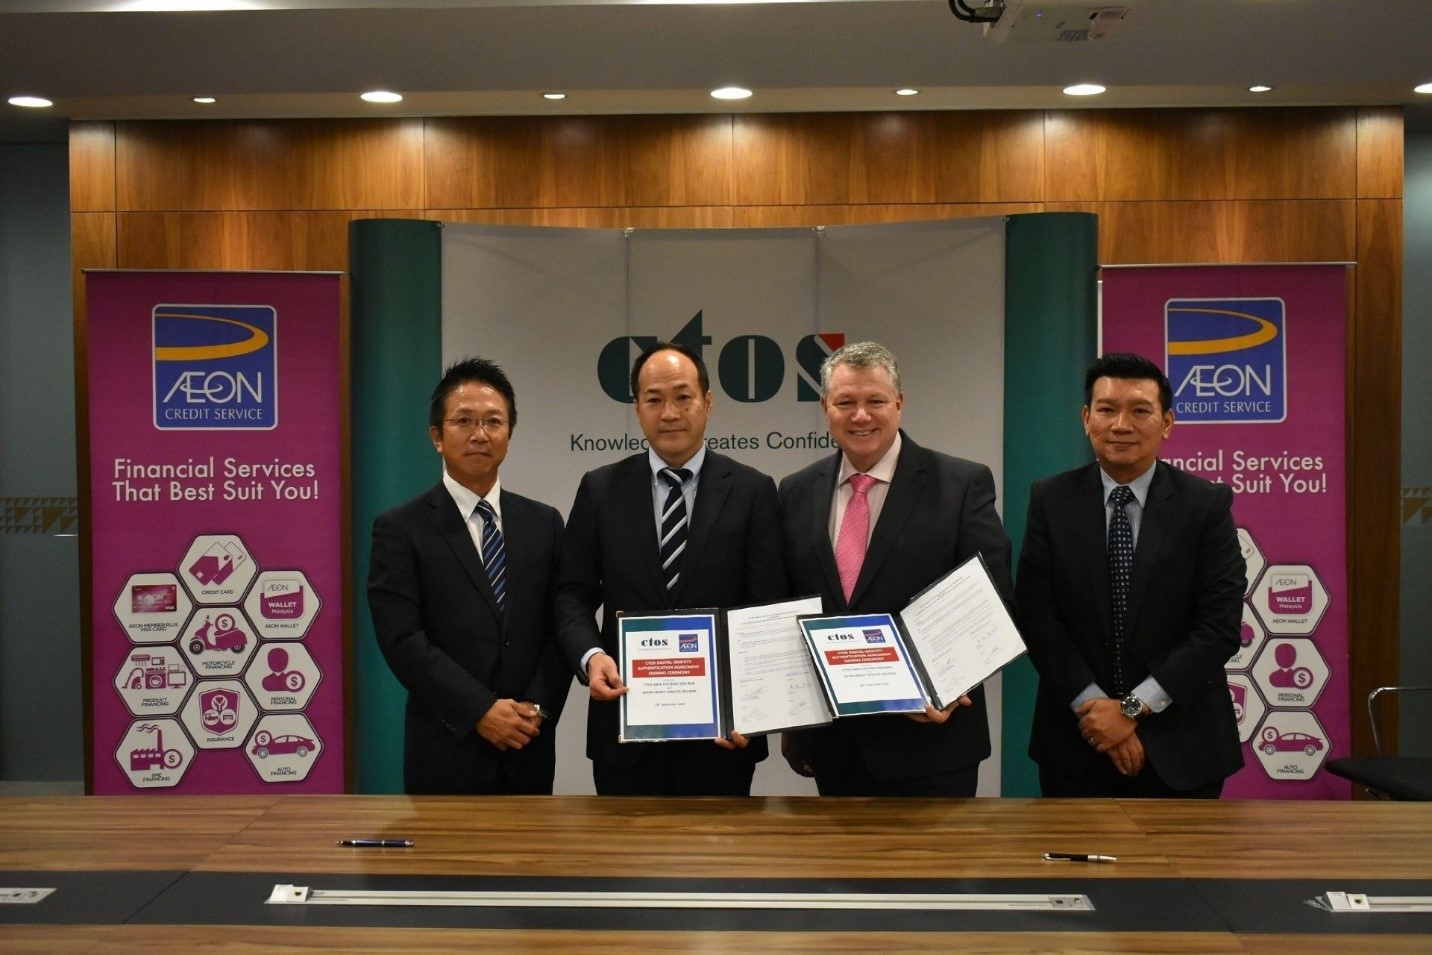 (From left) Aeon Credit chief marketing officer Shiro Ishida, managing director Yuro Kisaka, group CEO of CTOS Dennis Martin and CEO of CTOS Data Systems Sdn Bhd Group Eric Chin signed and witnessed the agreement to implement the CTOS eKYC solution.